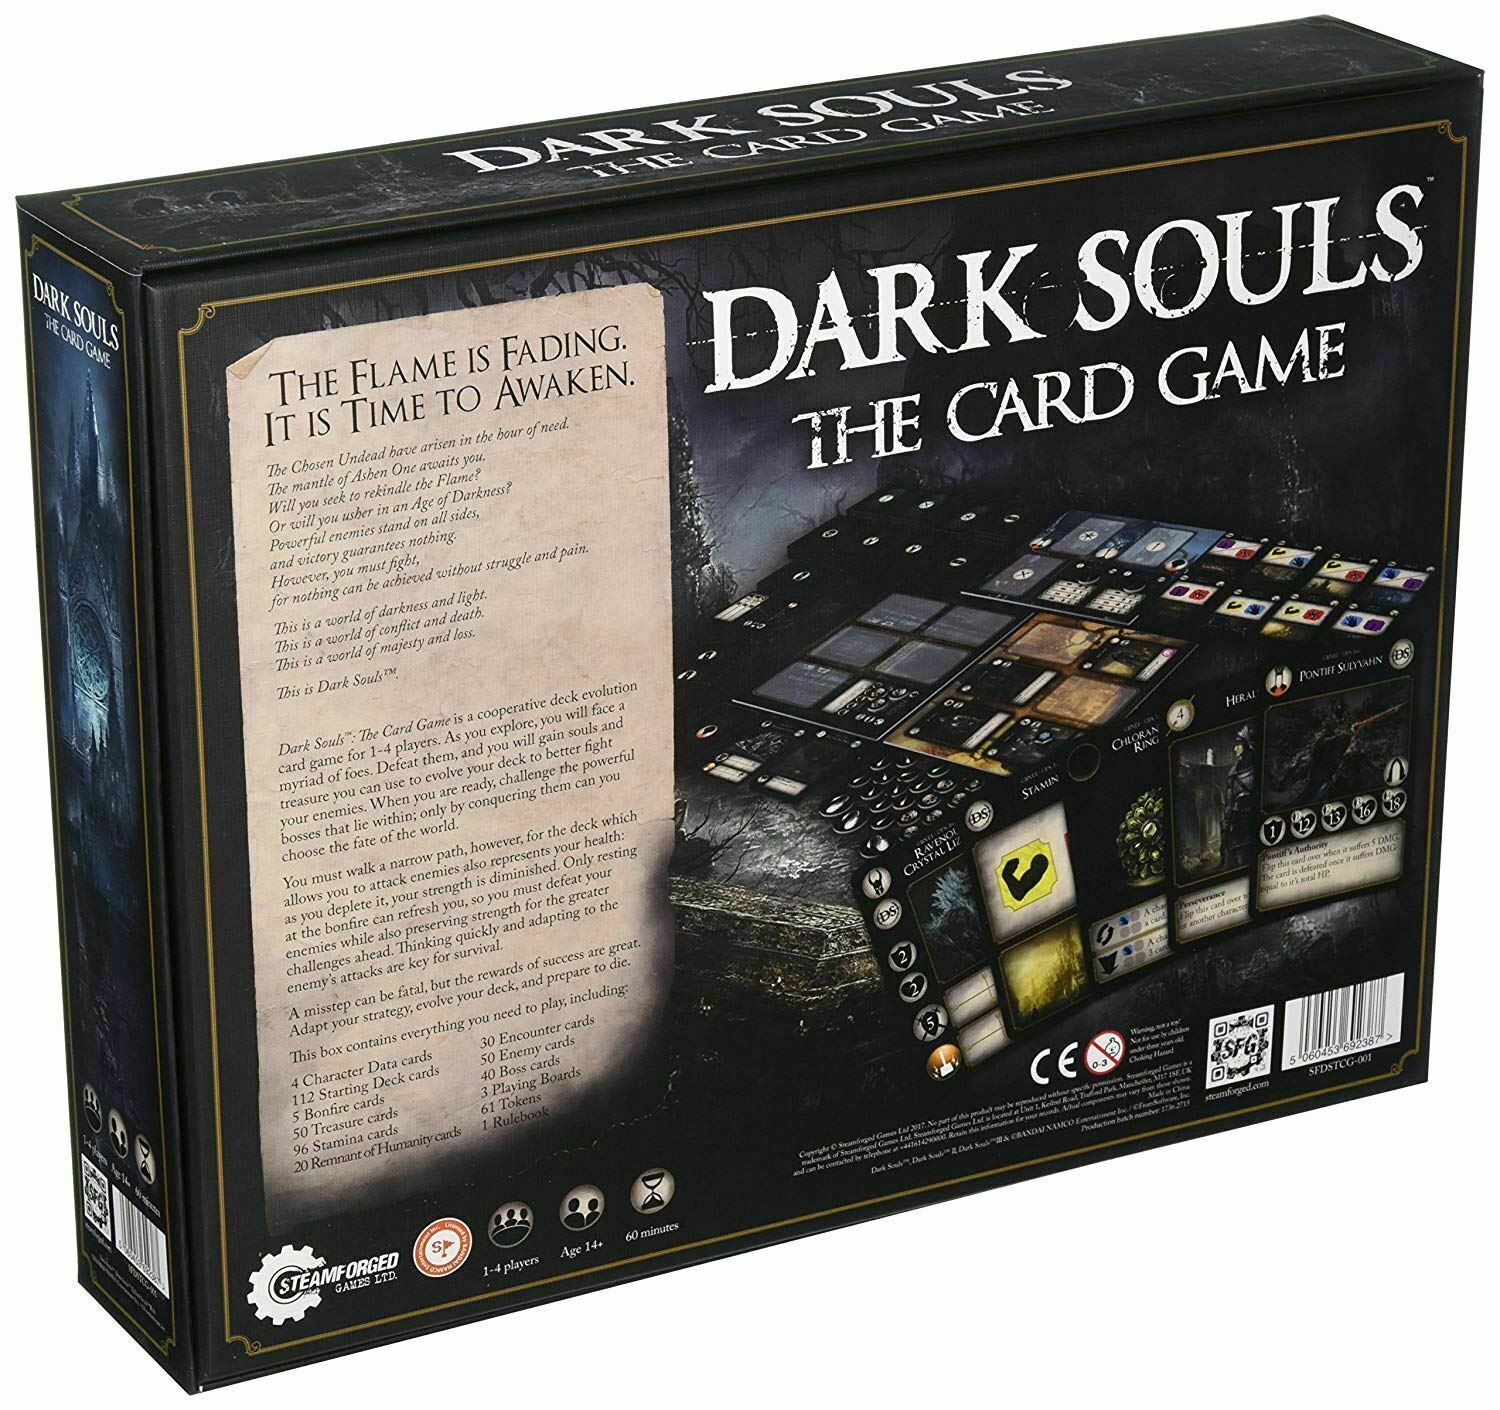 DARK DARK DARK SOULS THE CARD GAME 97196c